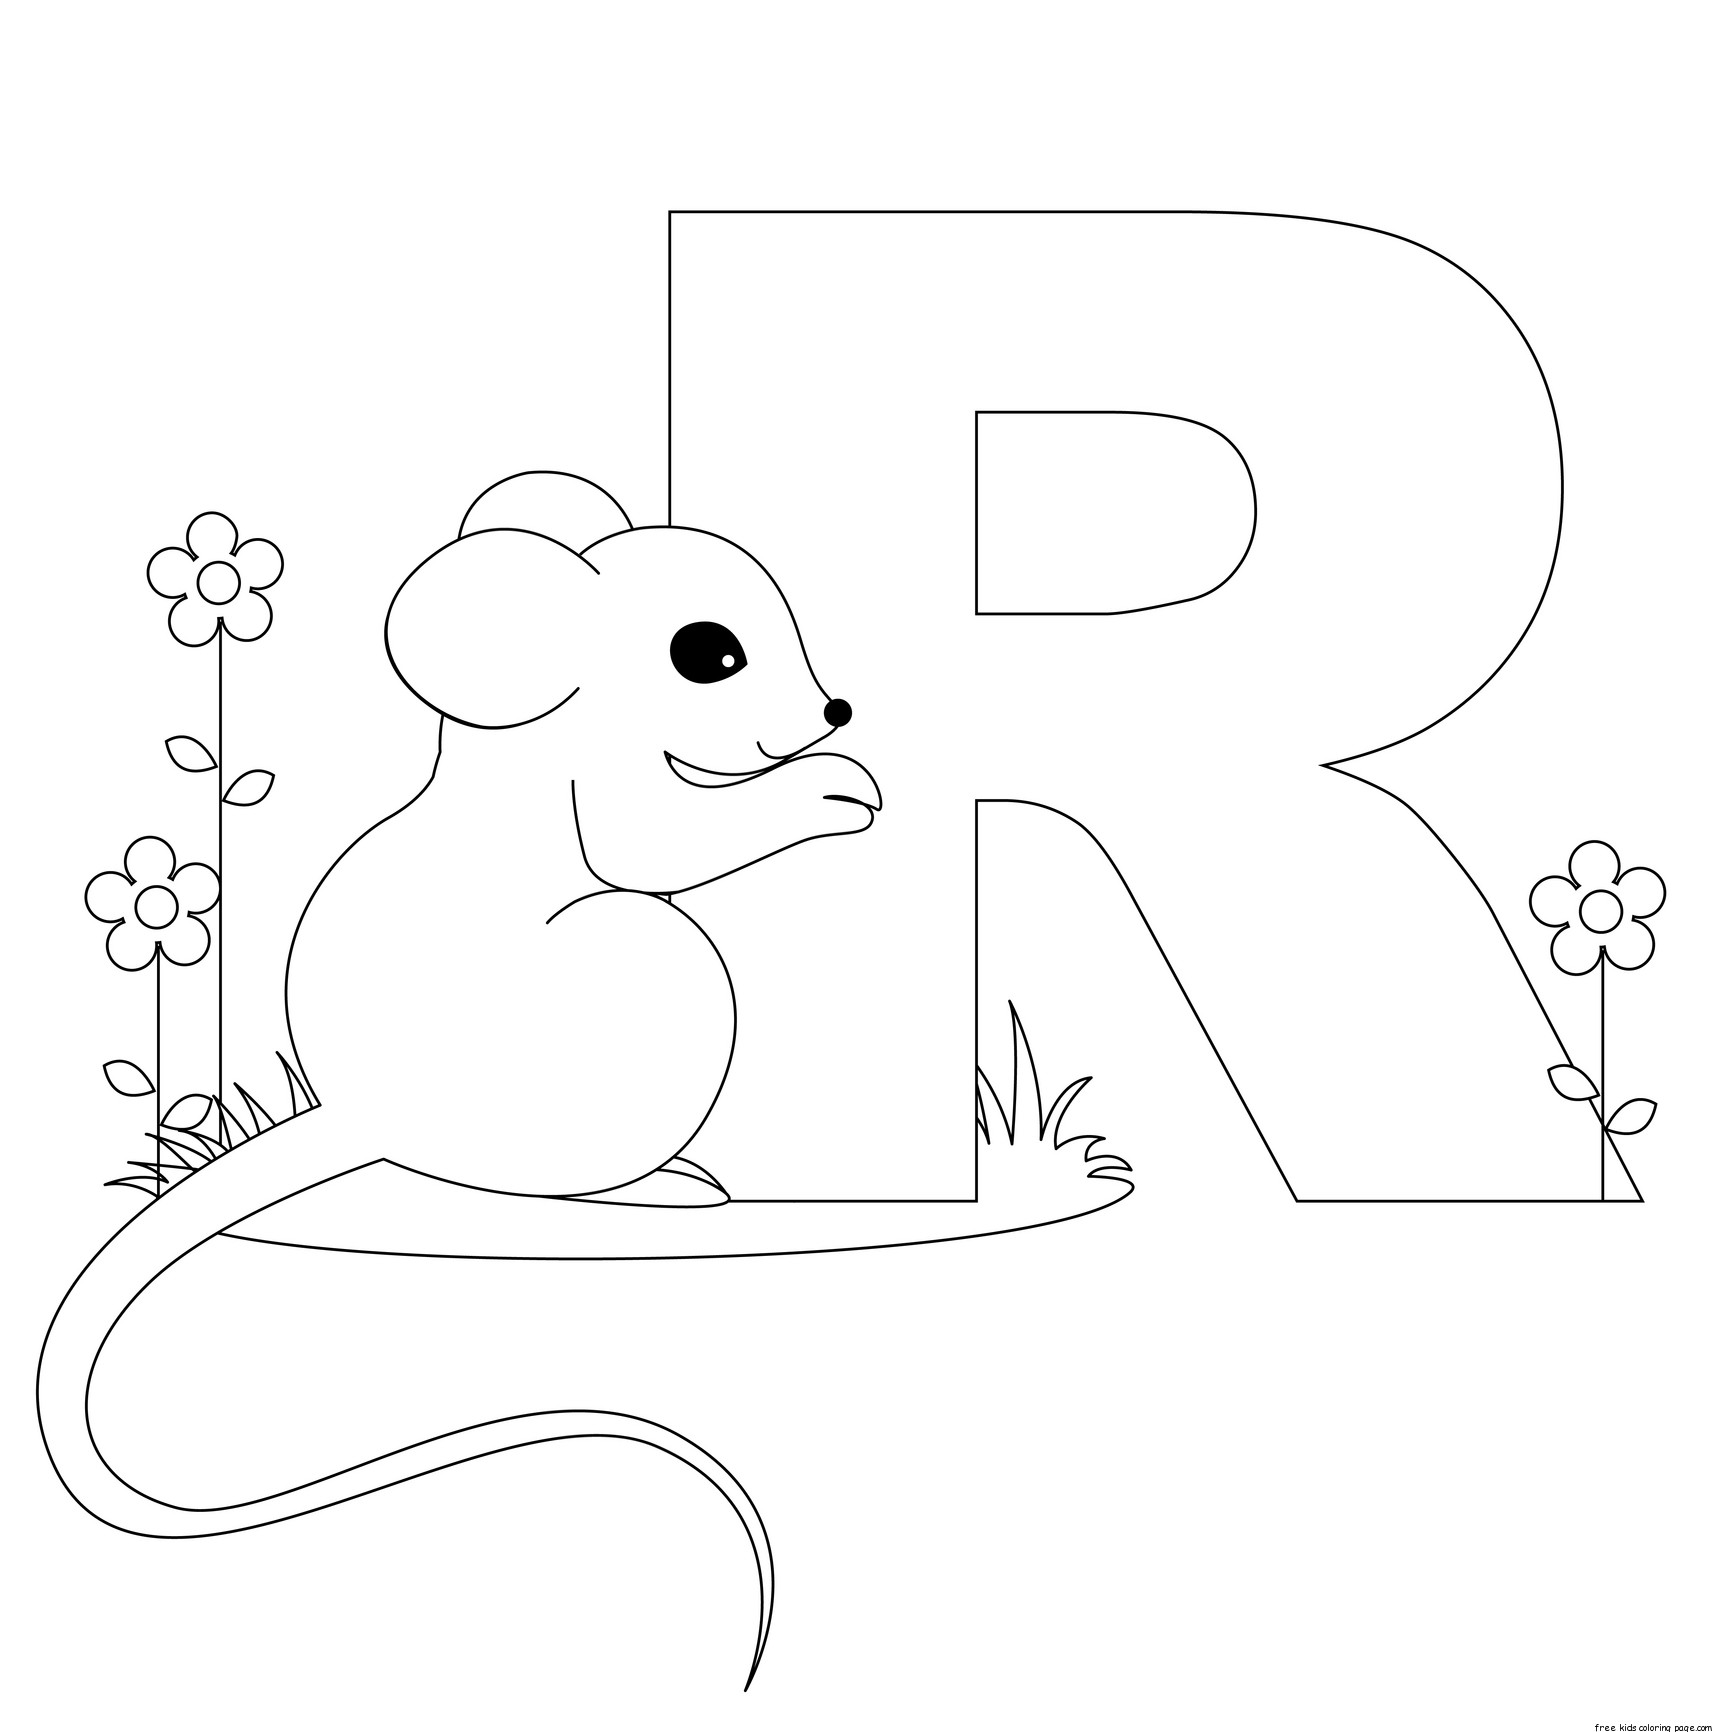 coloring page letters - printable animal alphabet letters coloring pages letter